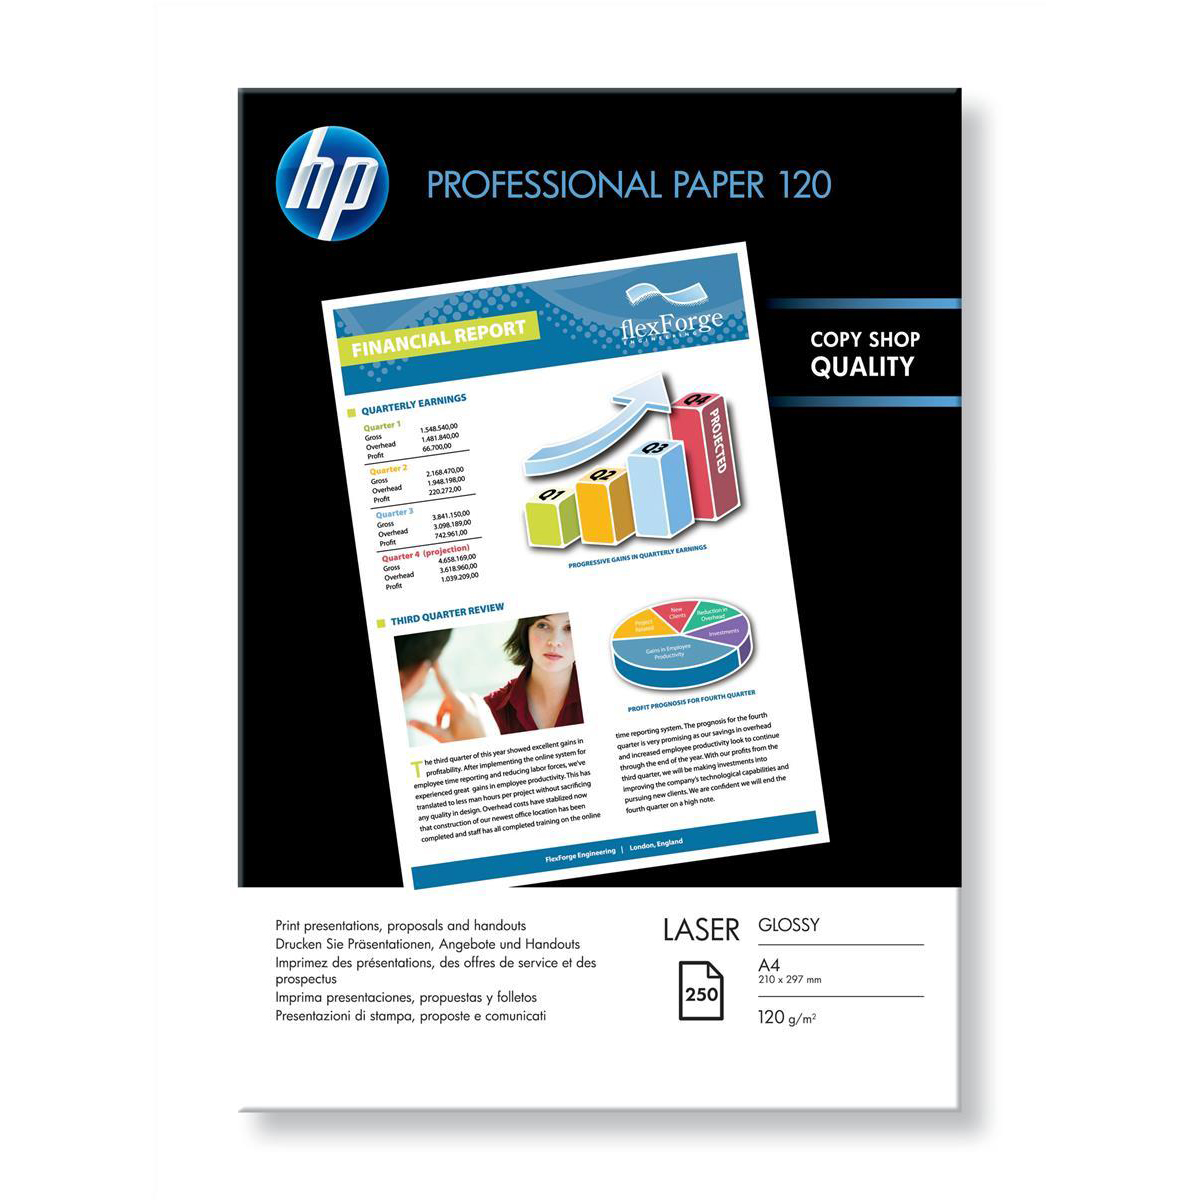 Hewlett Packard [HP] Professional Laser Paper Glossy 120gsm A4 Ref CG964A [250 Sheets]